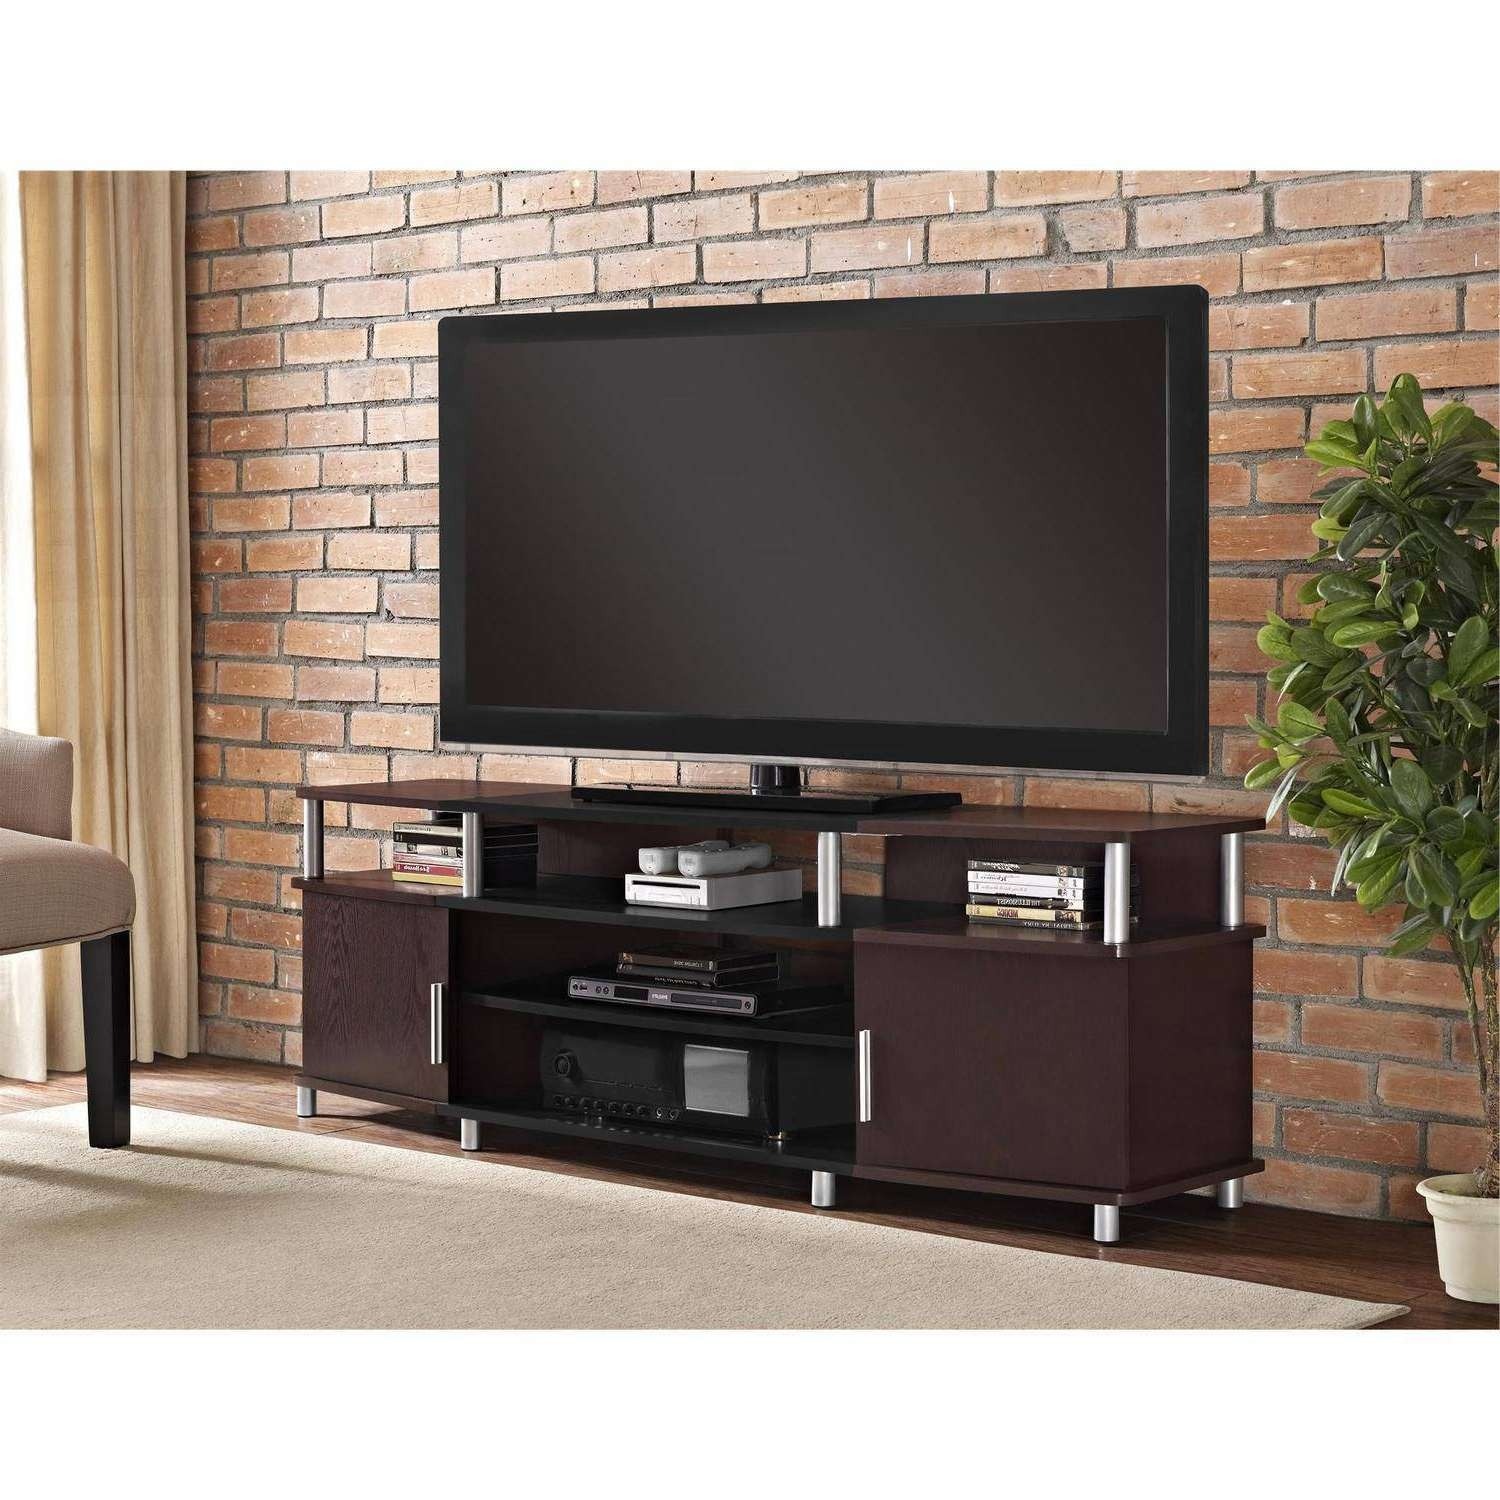 Tv Stands & Entertainment Centers – Walmart Throughout Black Tv Cabinets With Drawers (View 19 of 20)